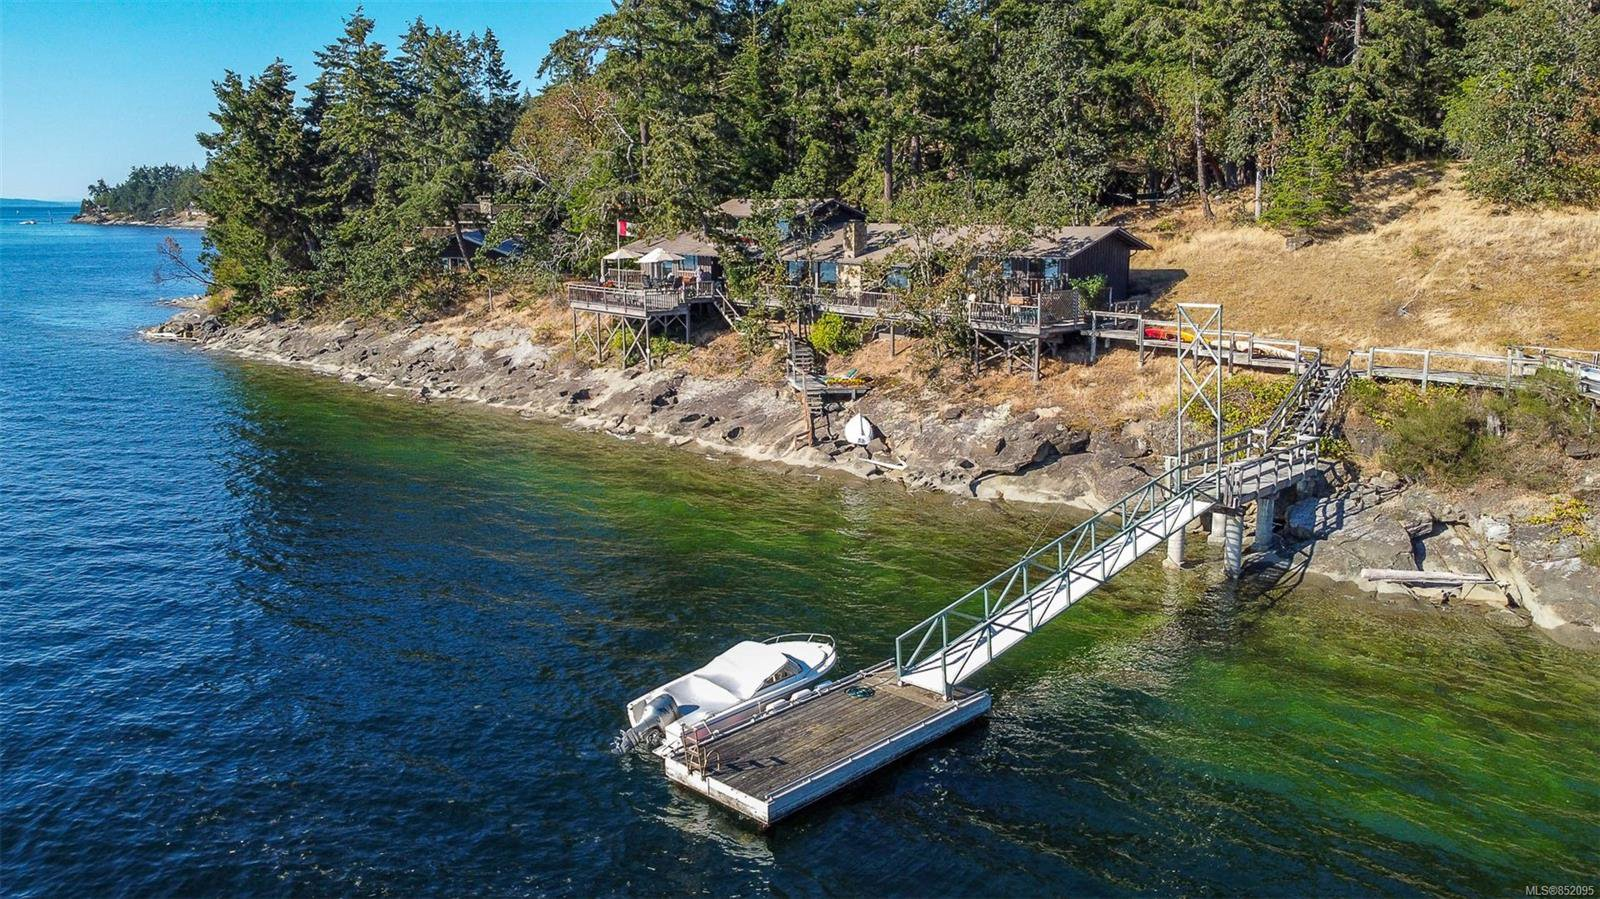 Main Photo: 236 McGill Rd in : GI Salt Spring Single Family Detached for sale (Gulf Islands)  : MLS®# 852095